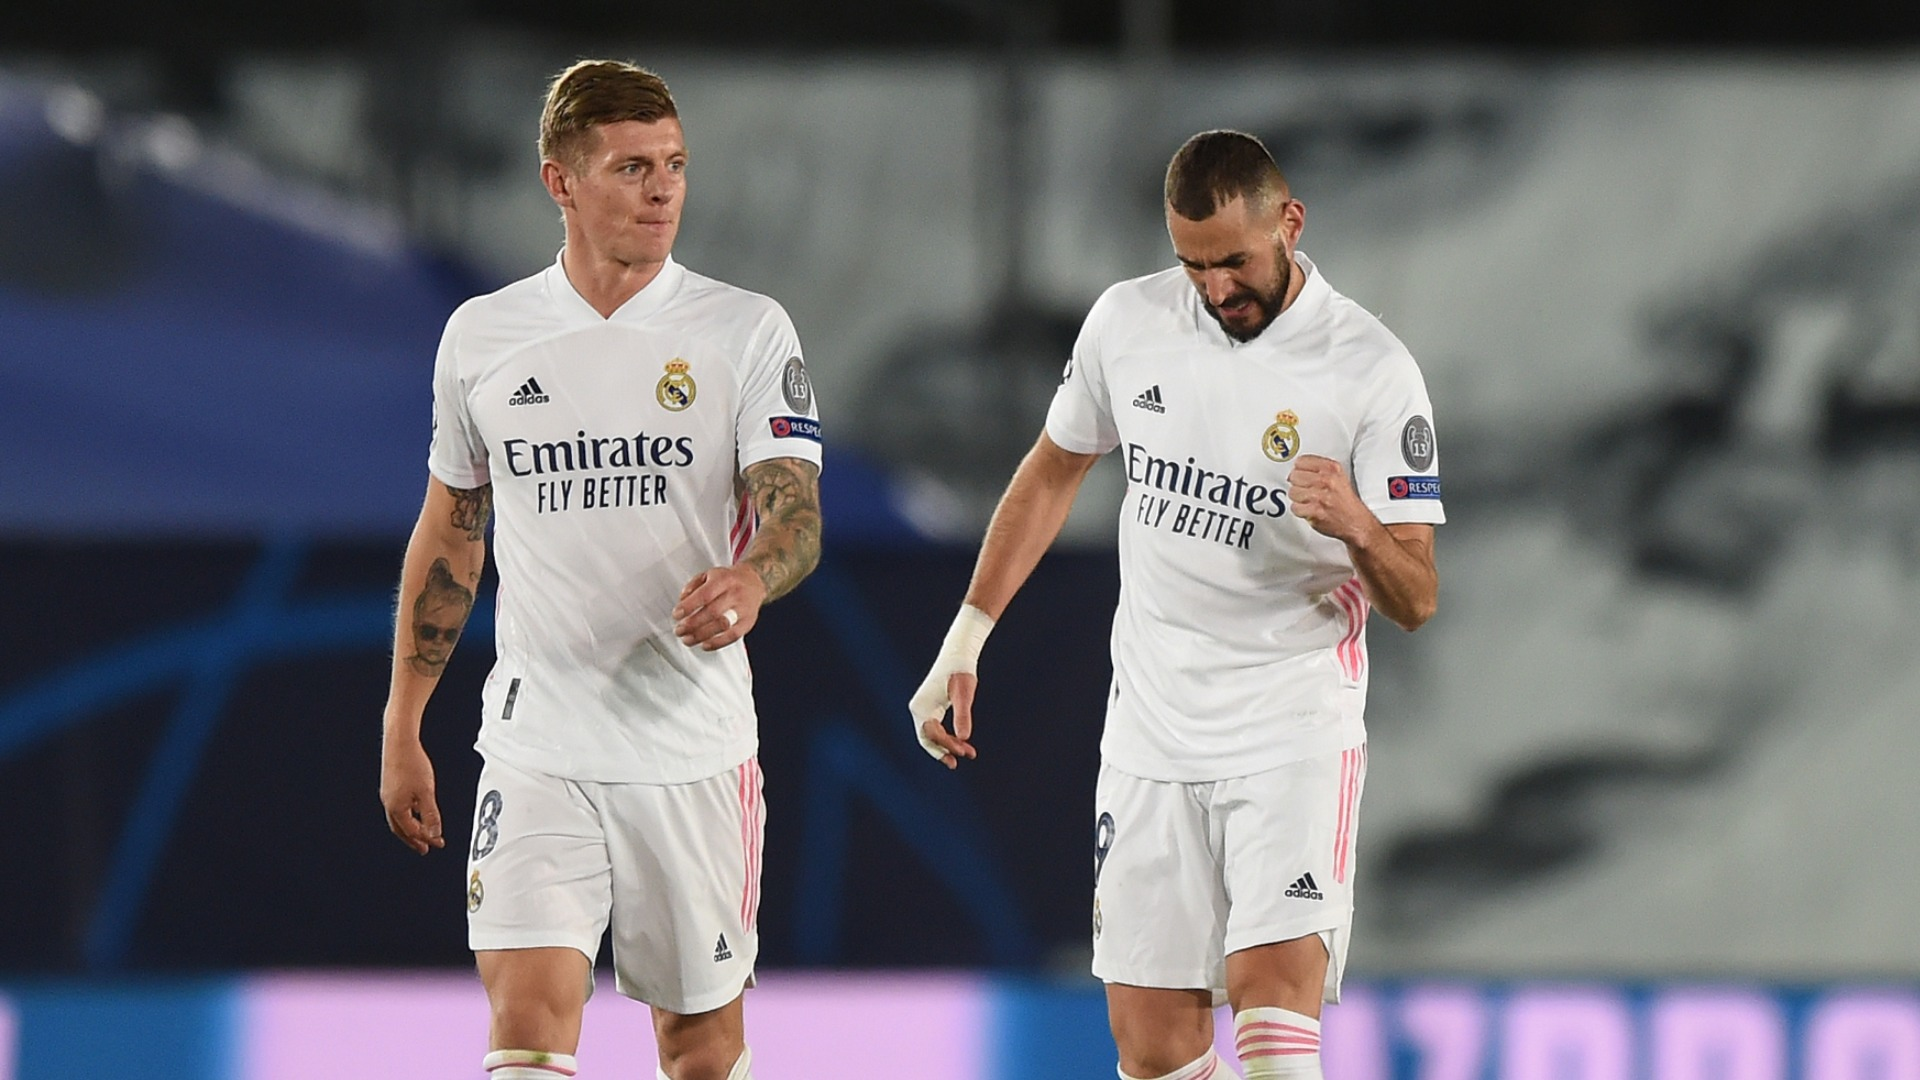 Mbappe or Haaland? Kroos wants to pass to Benzema!